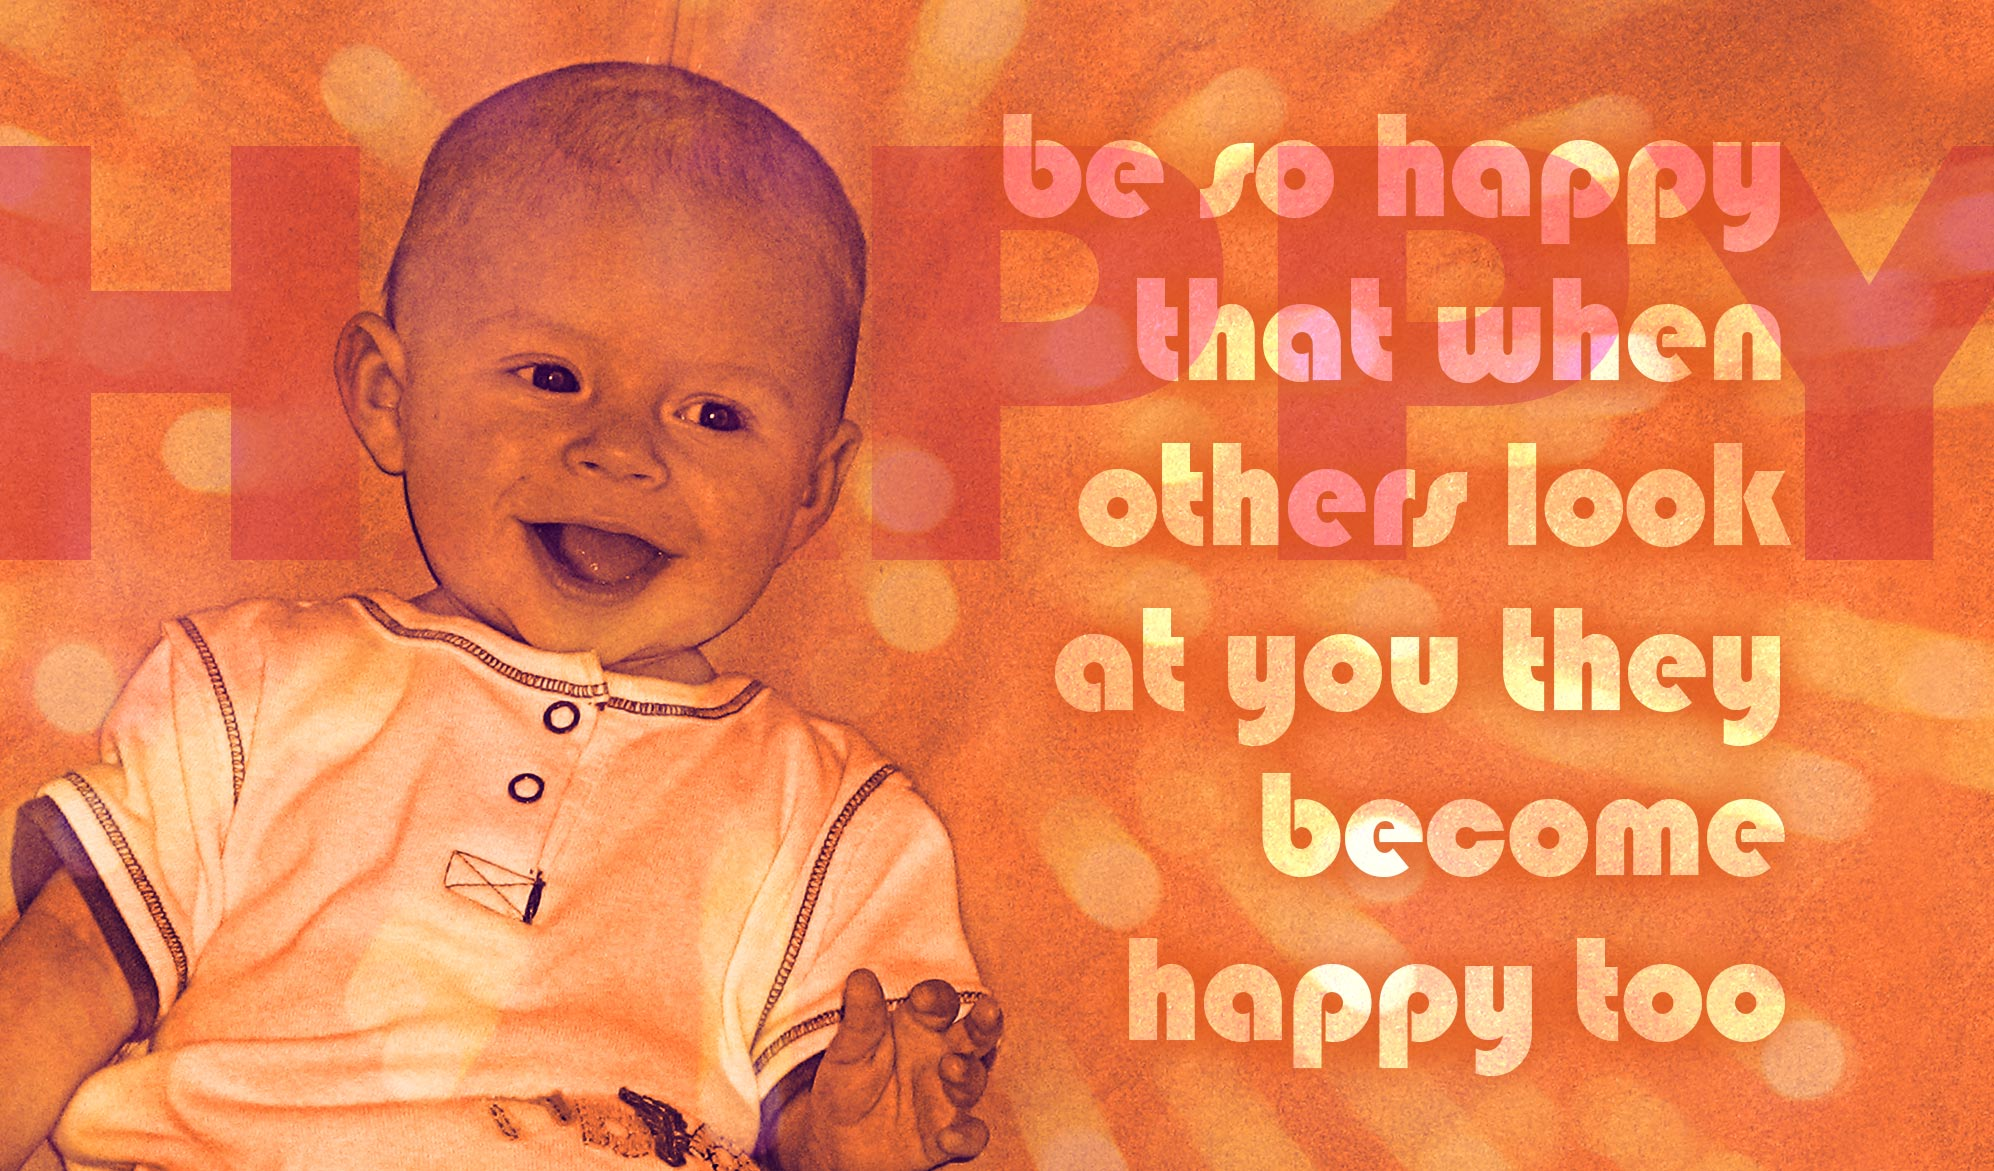 daily inspirational quote image: a beautiful baby smiling a toothless grin